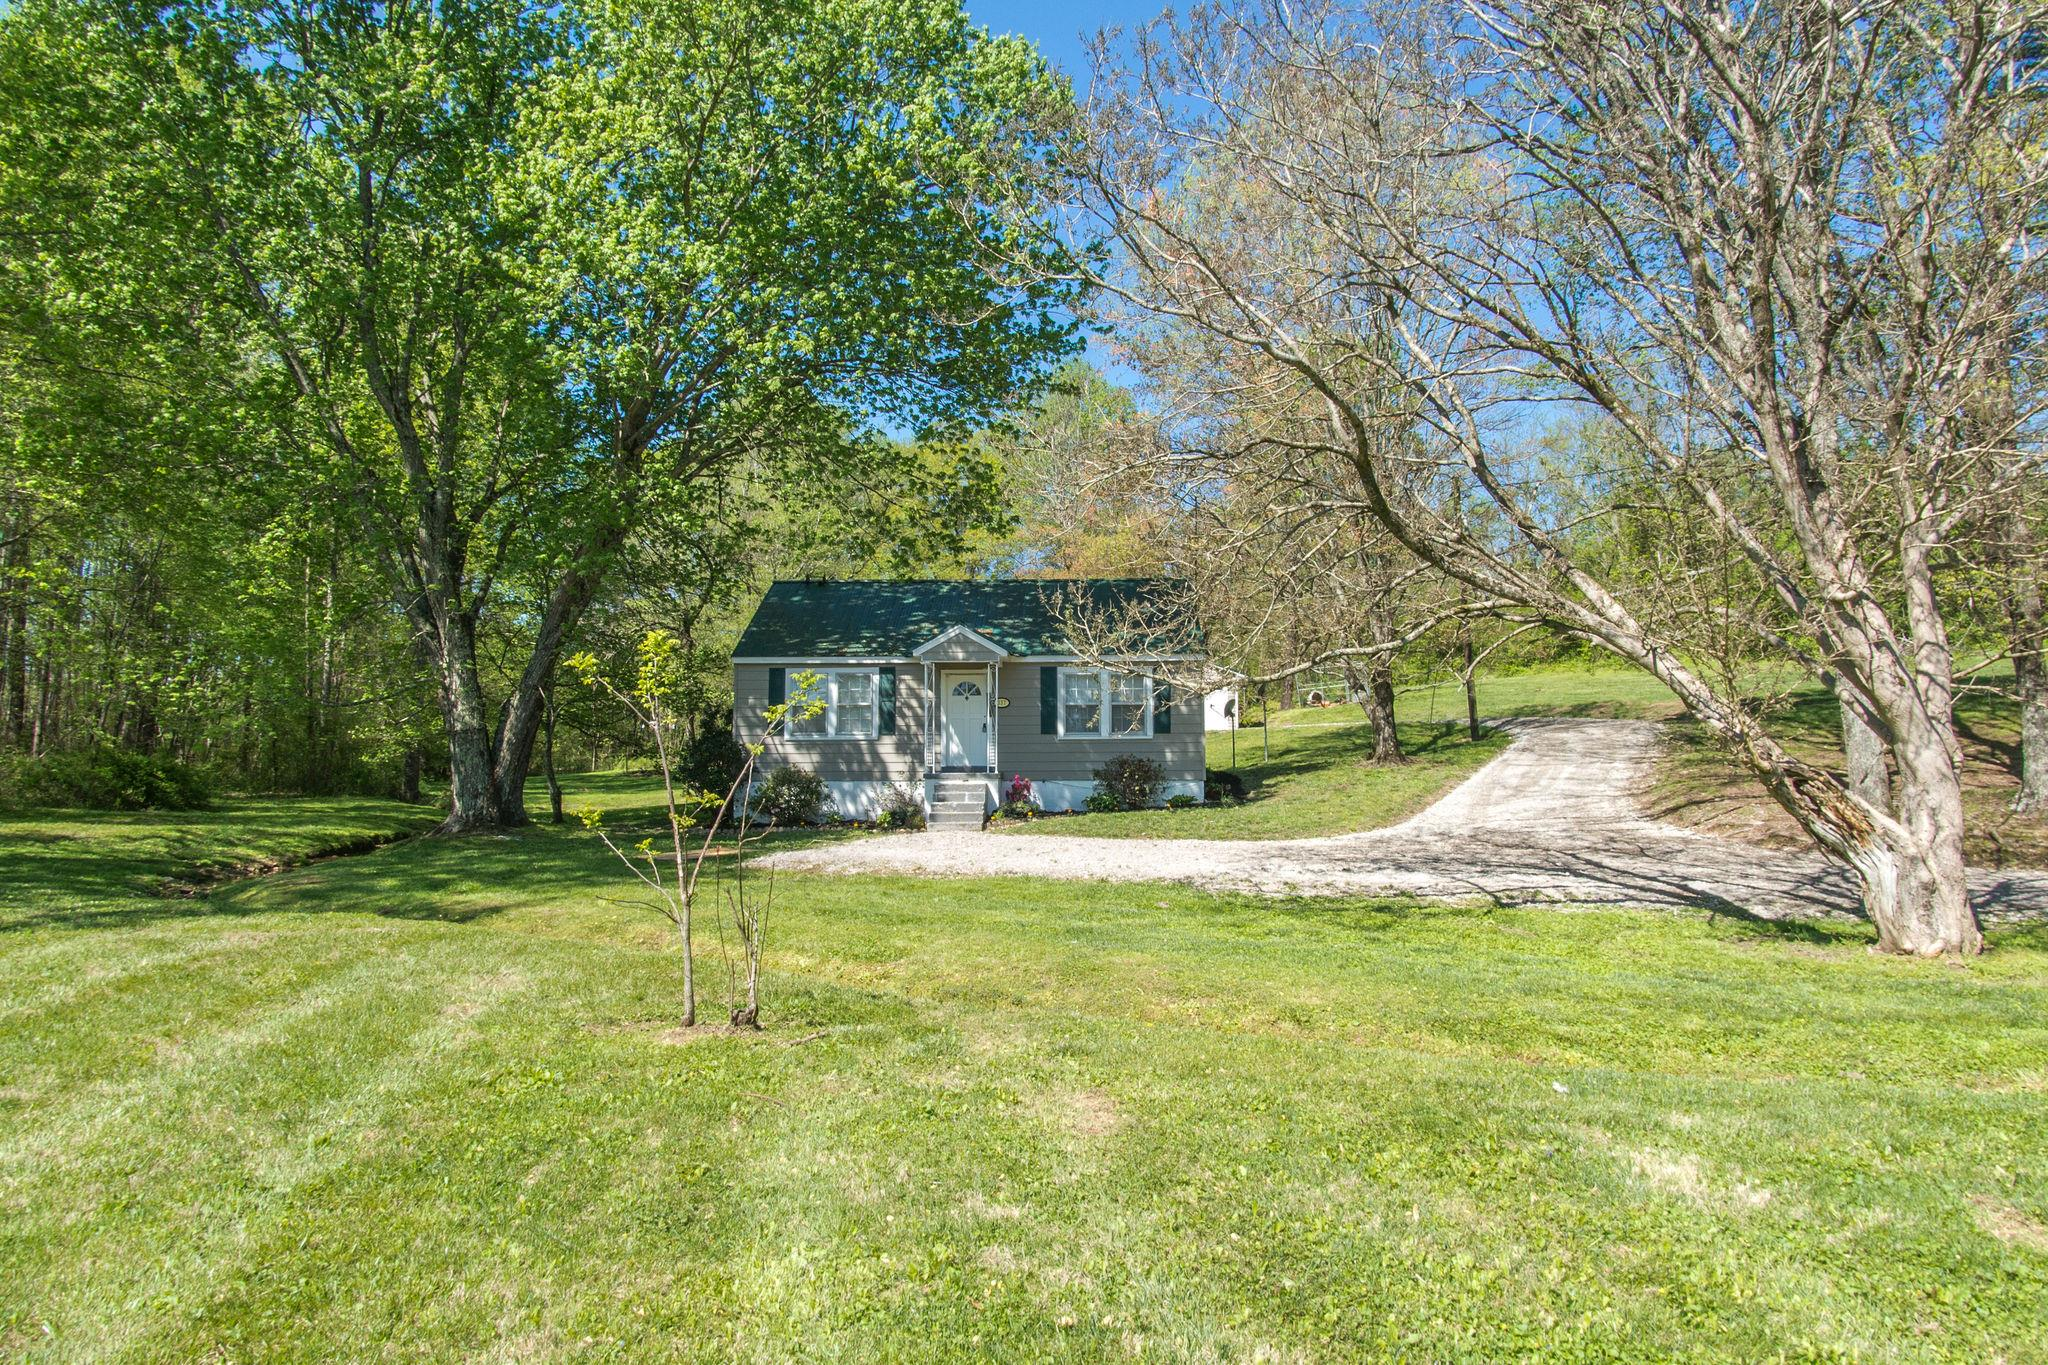 337 Old Murfreesboro Rd, Manchester, Tennessee